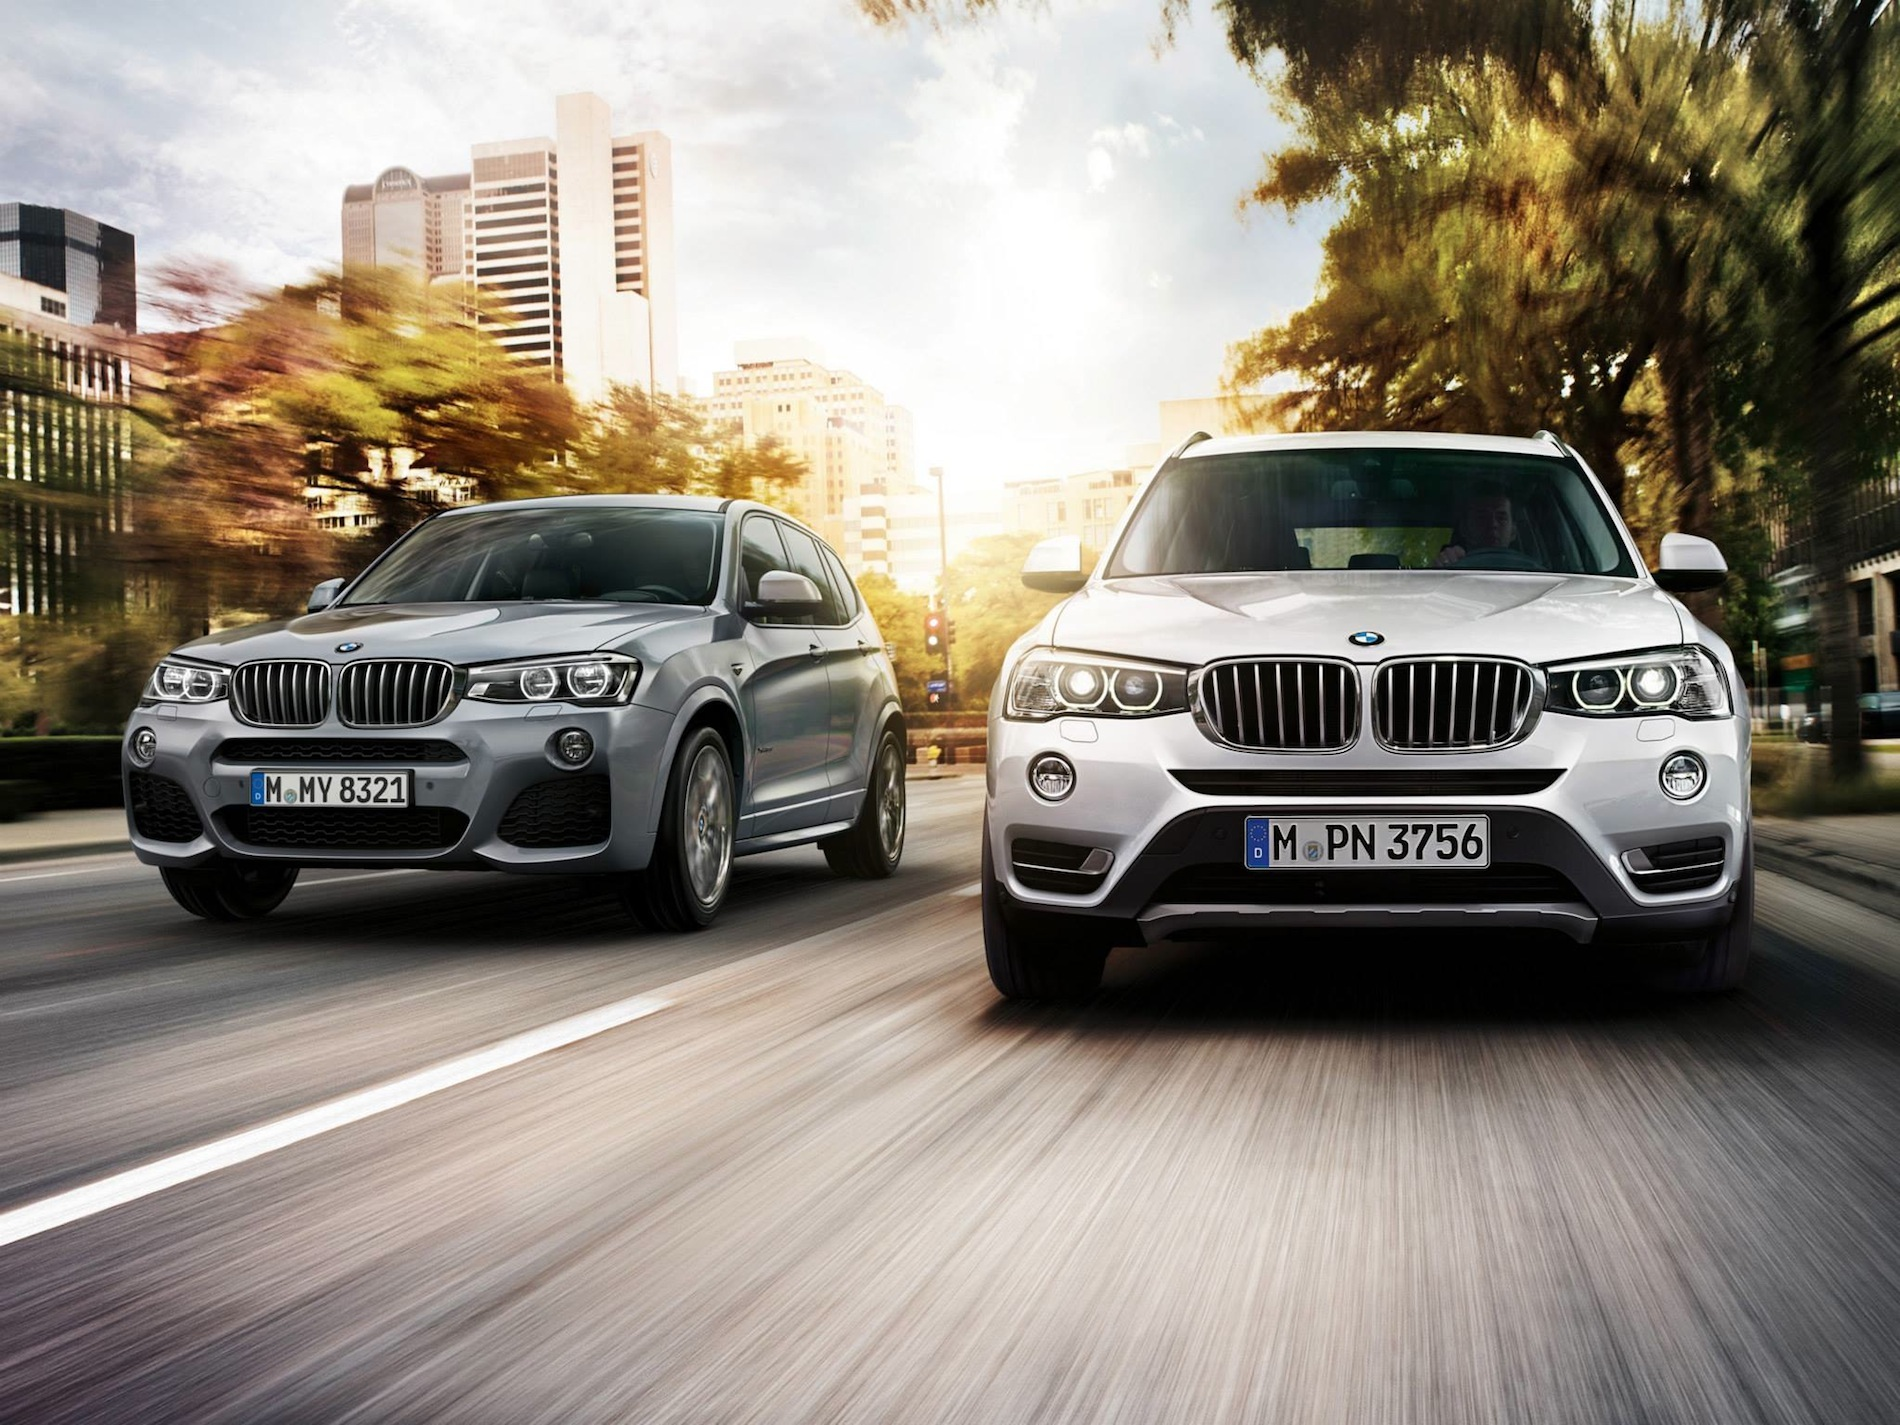 2015 BMW X3 LCI Facelift Refresh